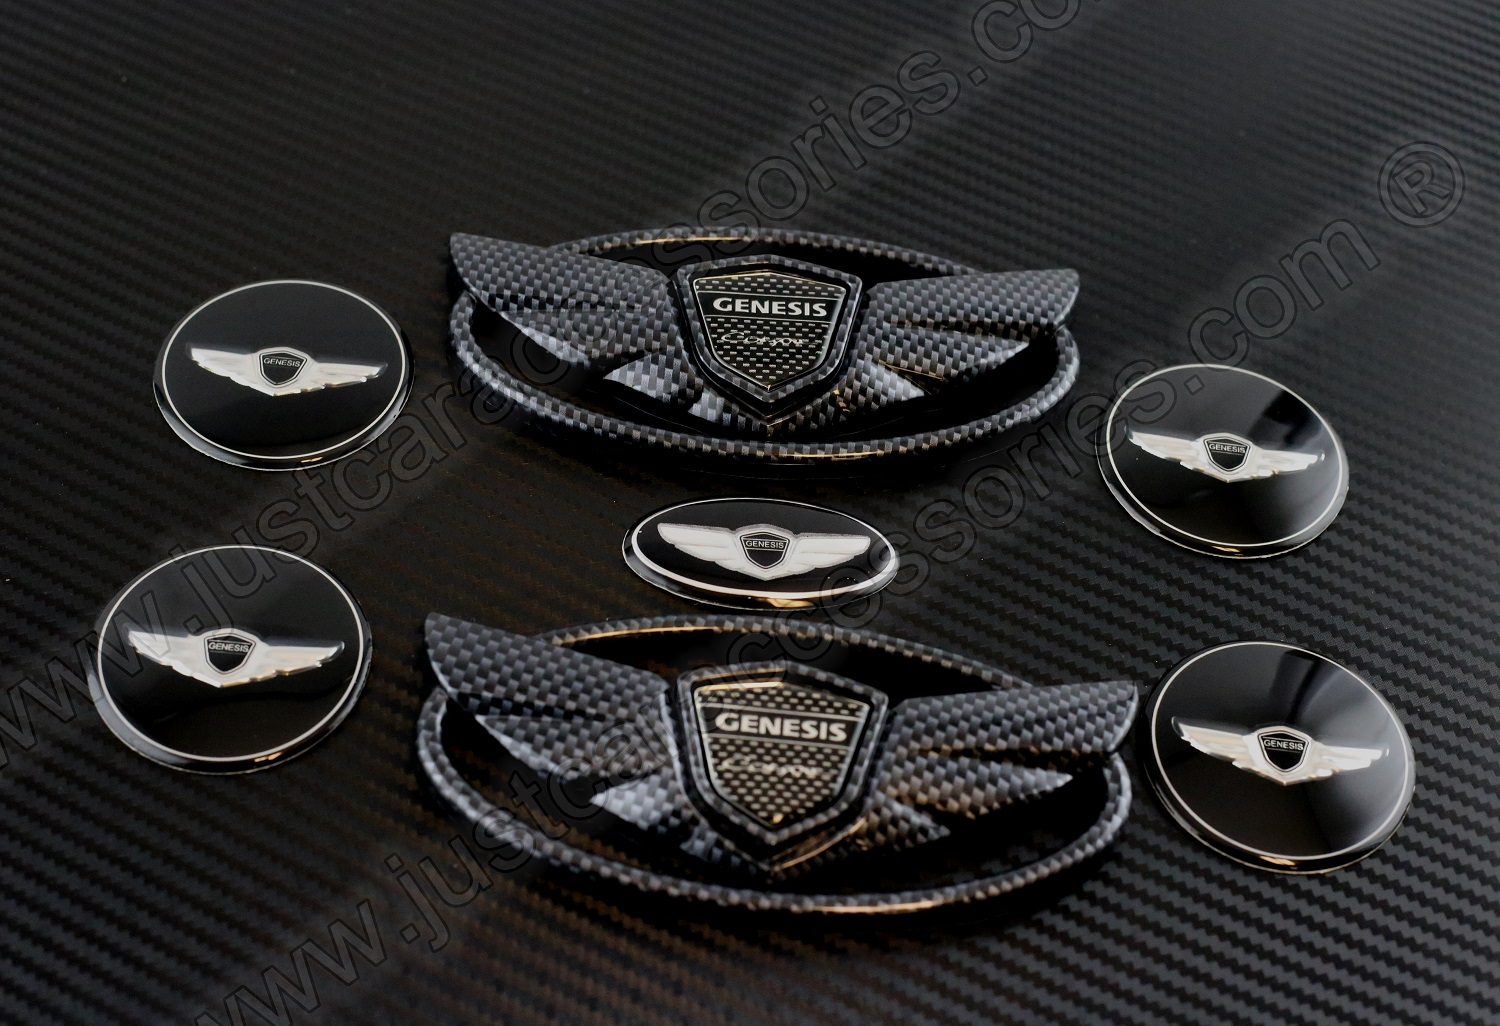 Hyundai Genesis Coupe Carbon Wing Logo Emblem With Center Cap